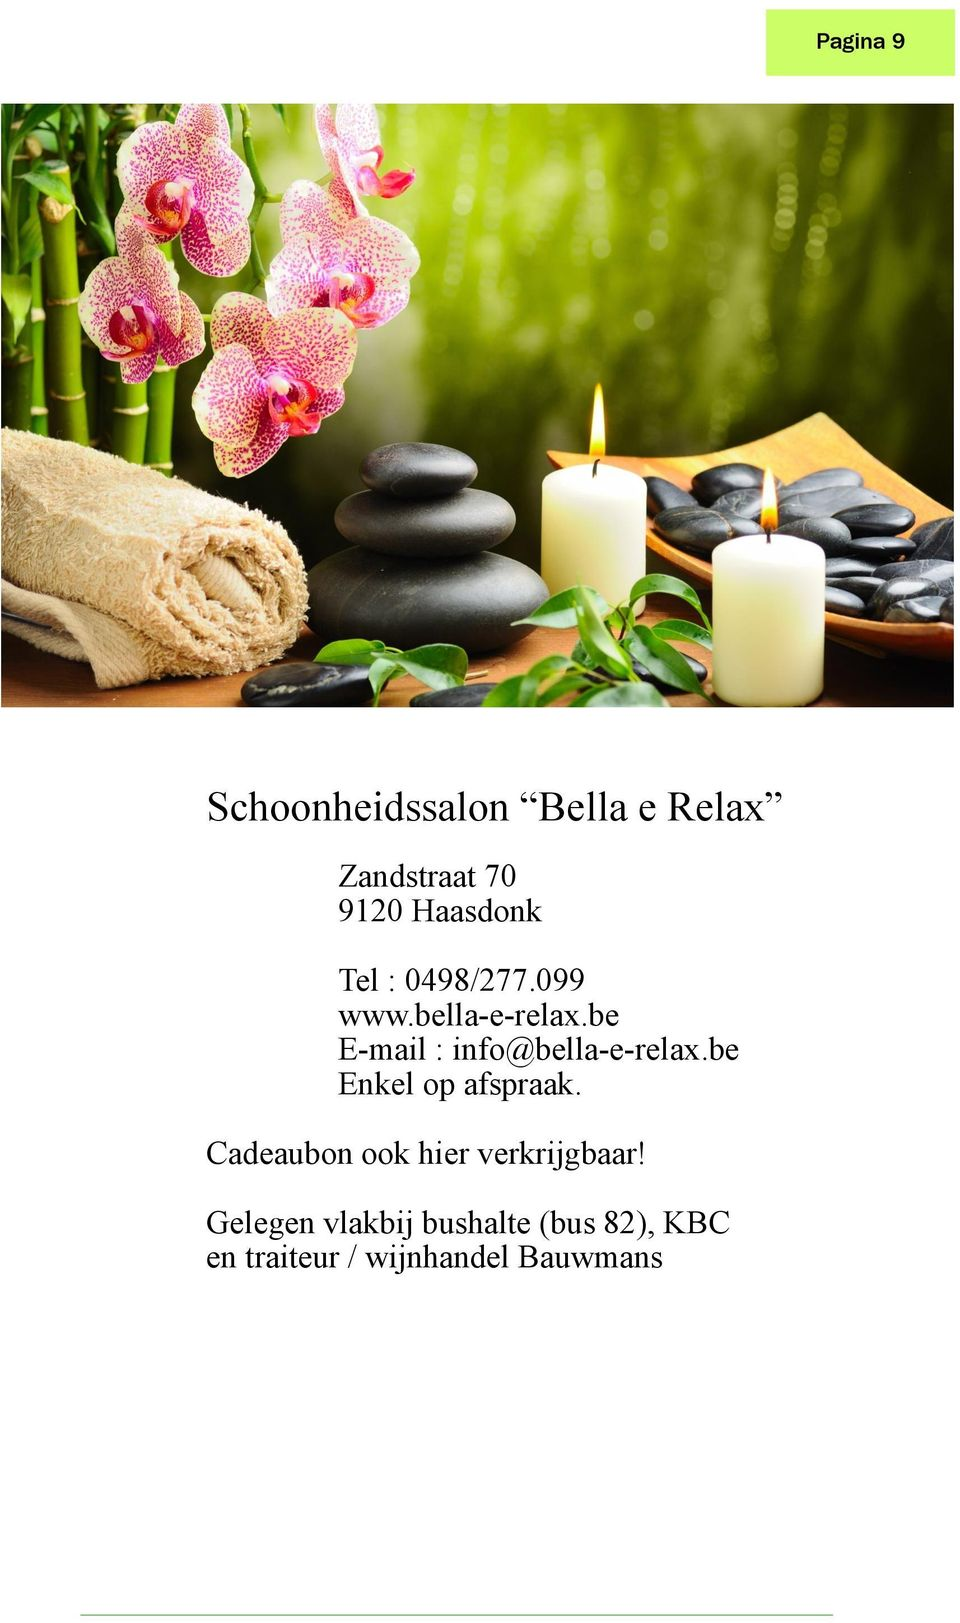 be E-mail : info@bella-e-relax.be Enkel op afspraak.